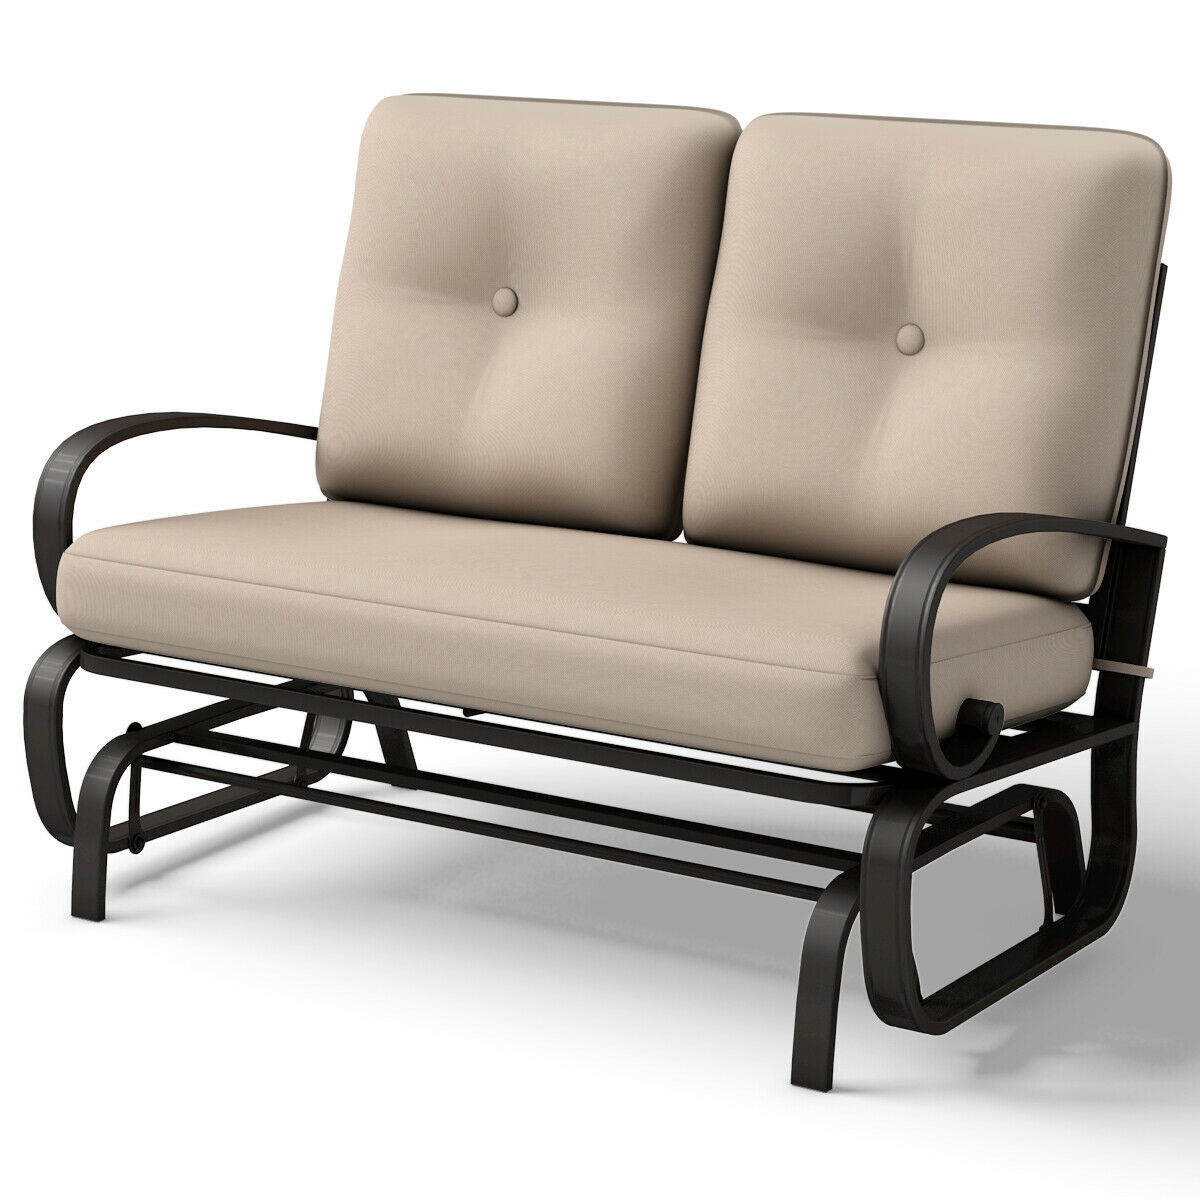 Superieur Costway Glider Outdoor Patio Rocking Bench Loveseat Cushioned Seat Steel  Frame Furniture